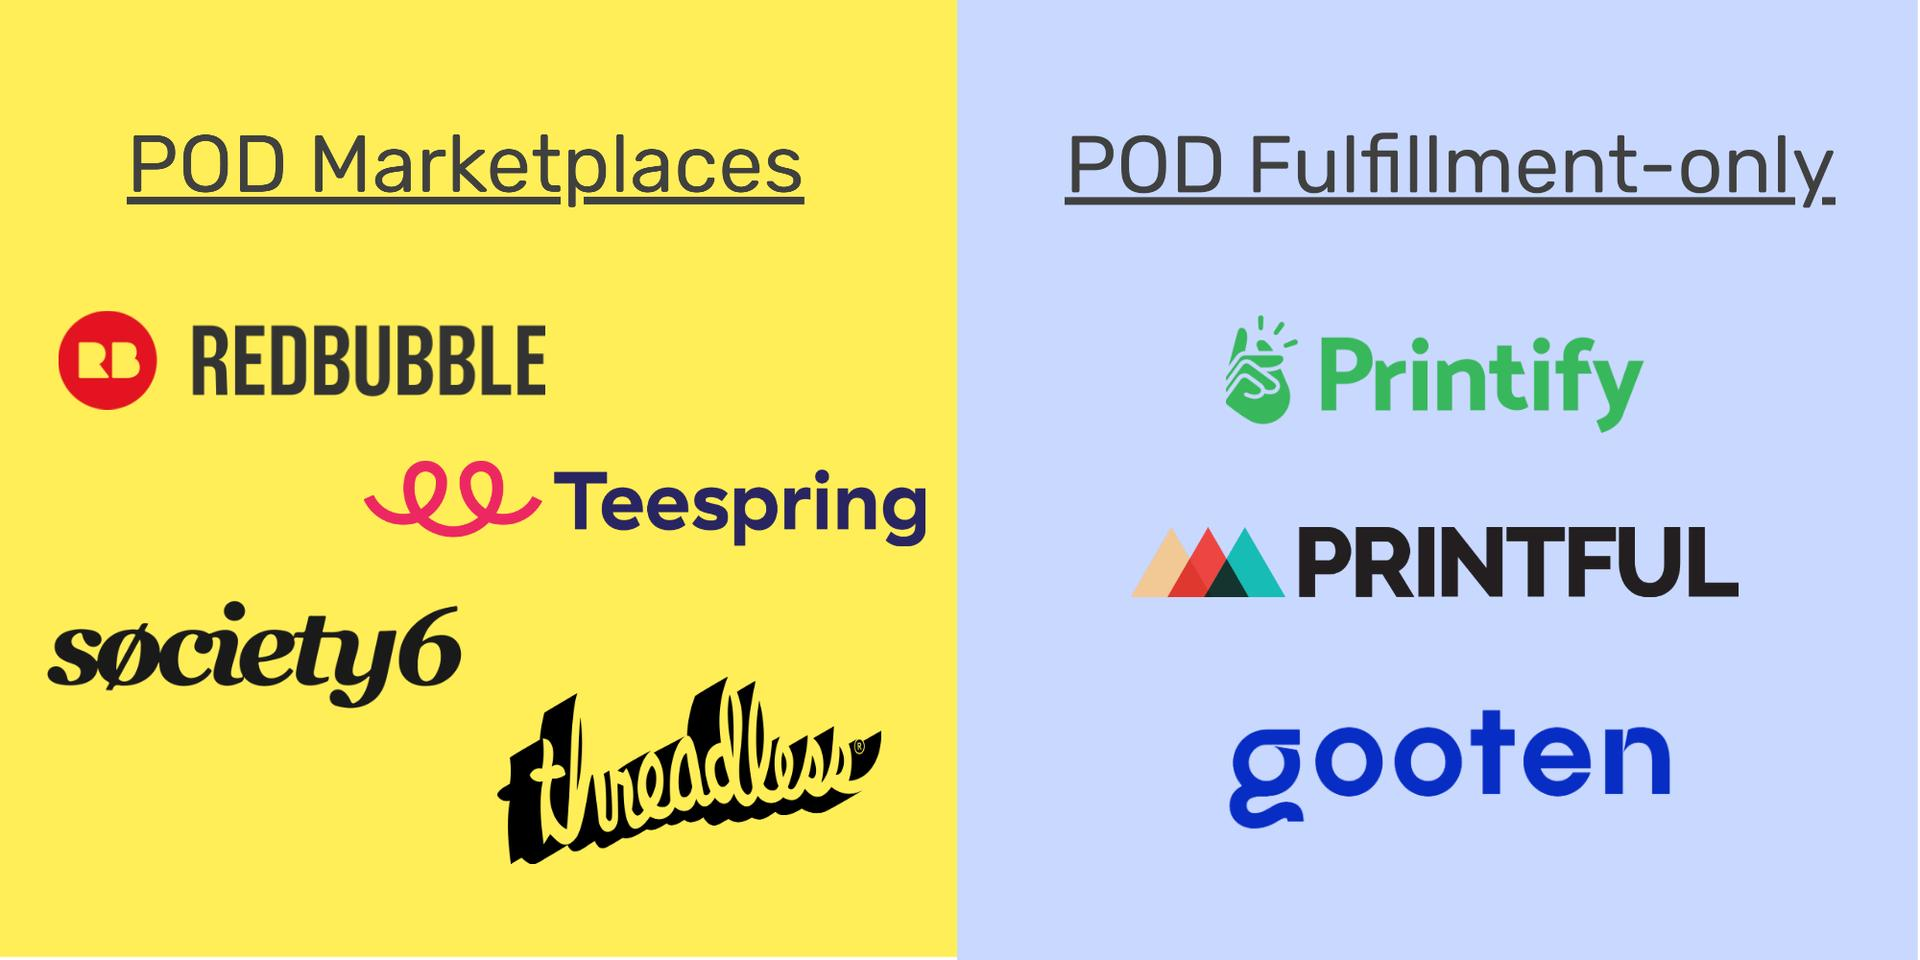 Print on demand marketplaces vs fulfillment-only services